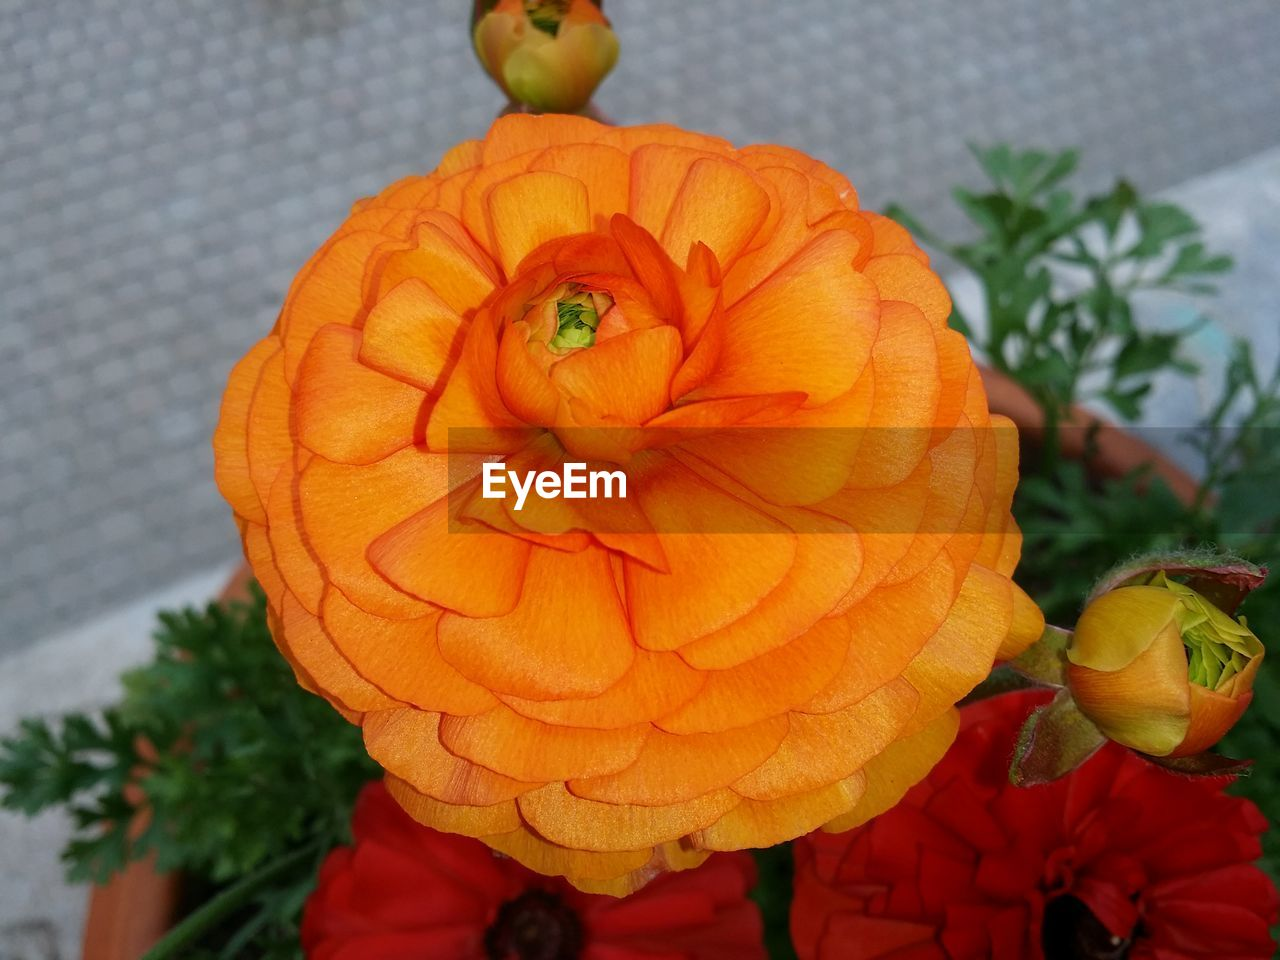 flower, orange color, petal, freshness, flower head, beauty in nature, nature, growth, plant, fragility, day, no people, leaf, blooming, outdoors, close-up, pumpkin